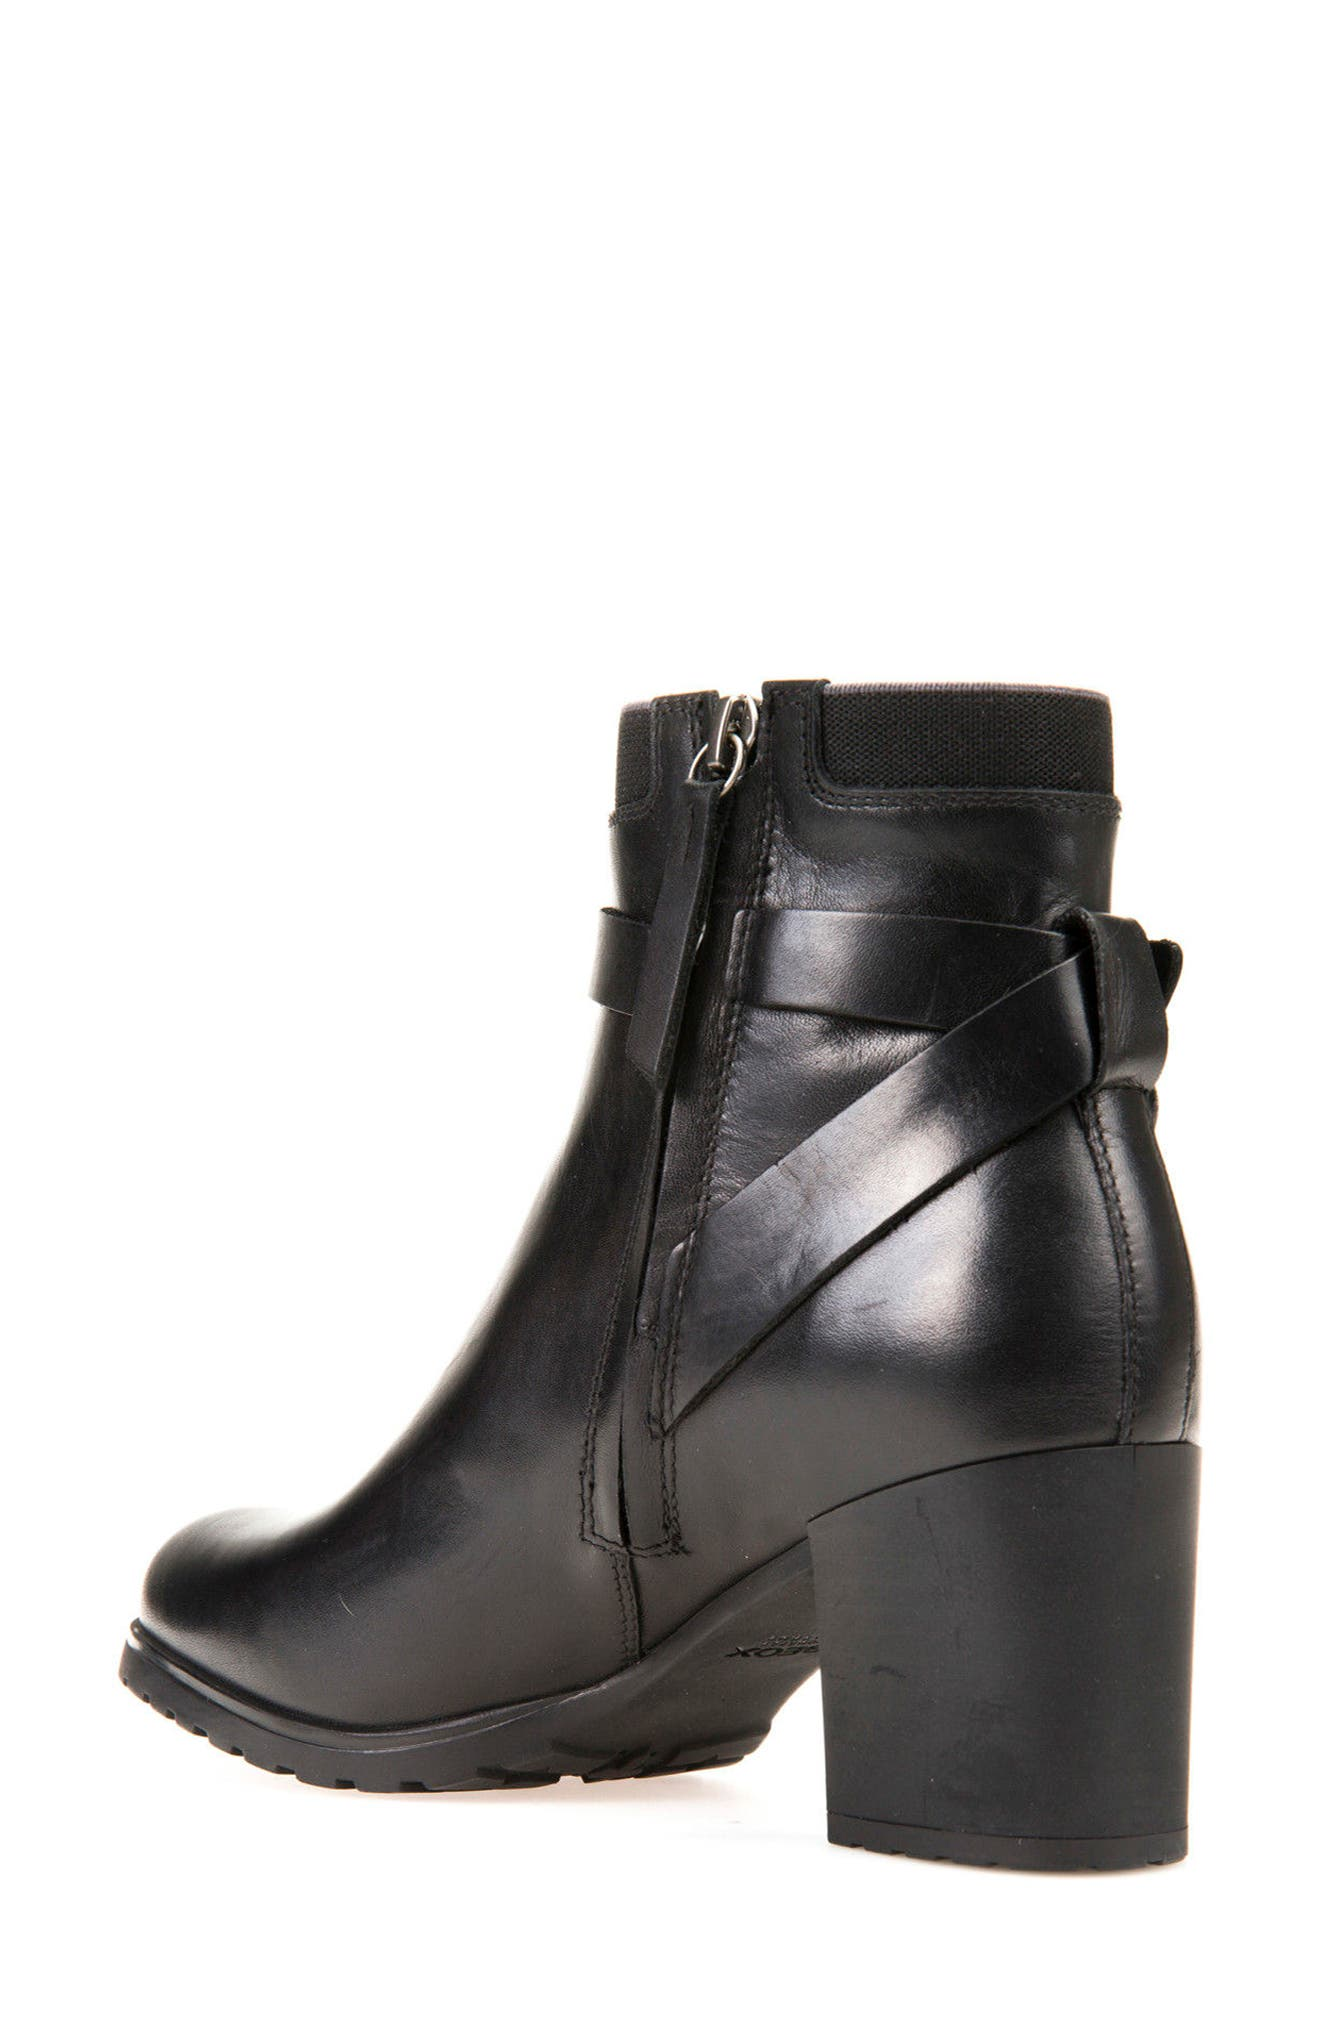 Nelisen ABX Waterproof Bootie,                             Alternate thumbnail 2, color,                             Black Leather